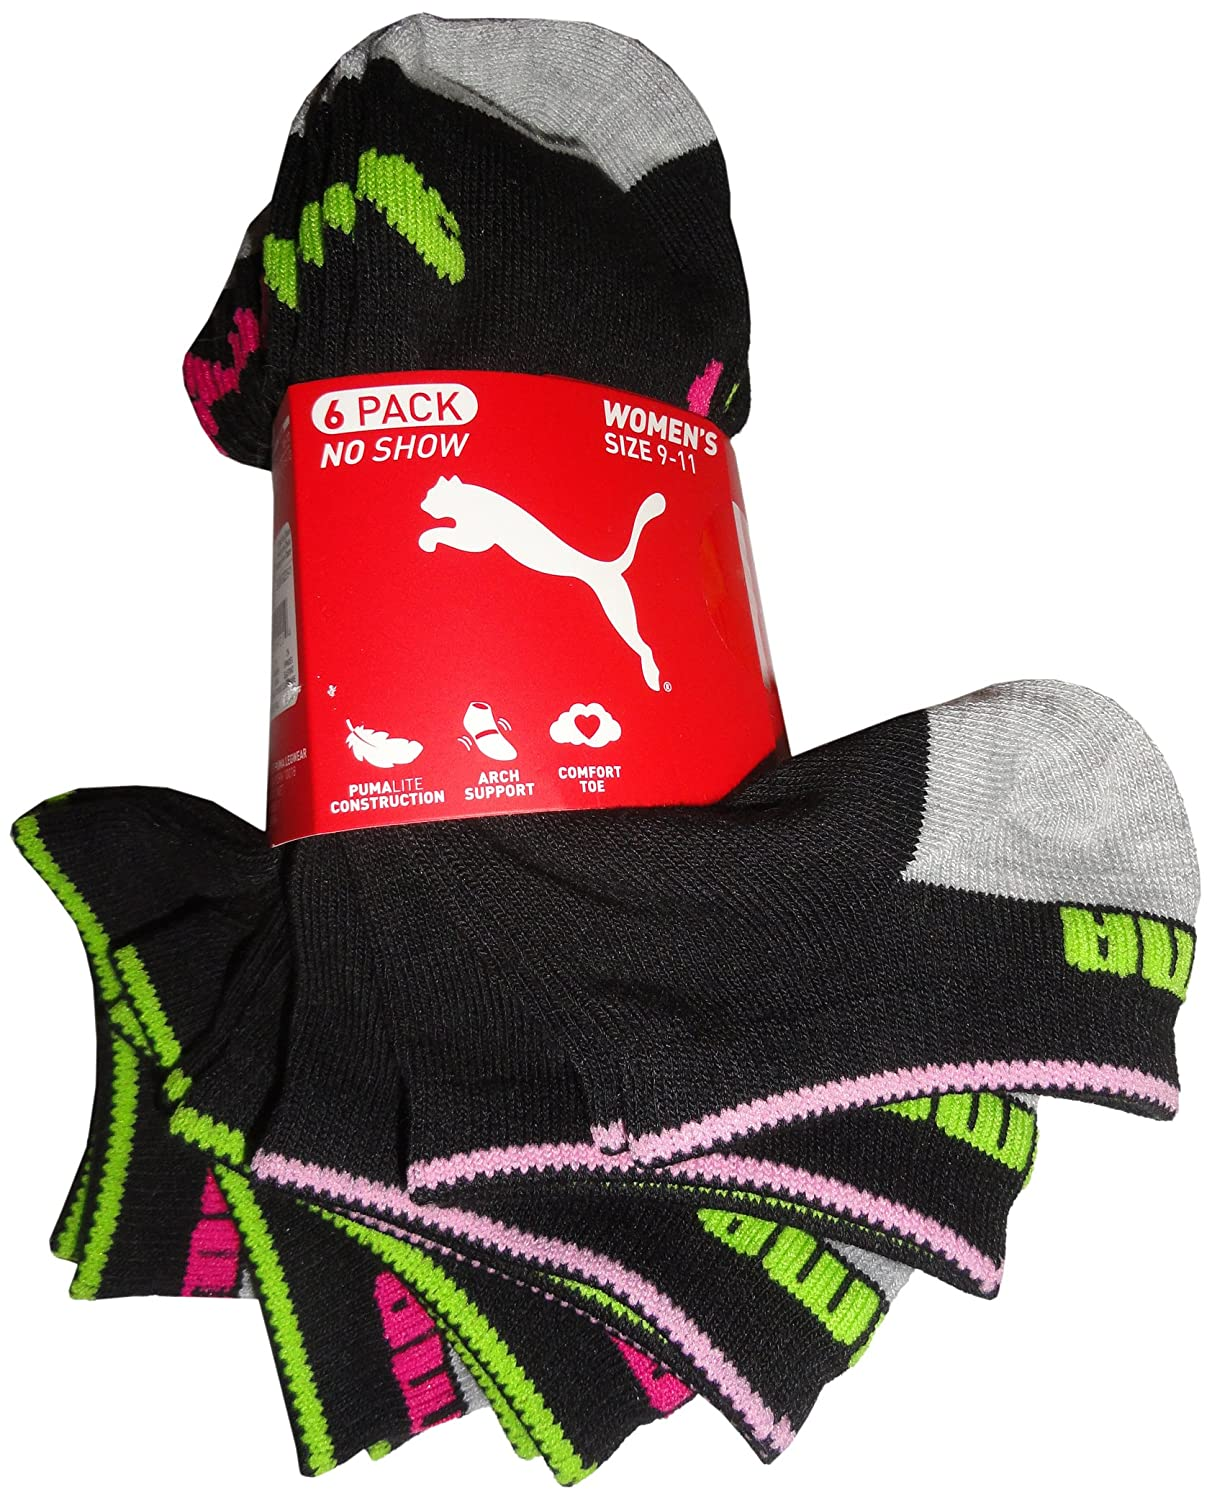 6 Pair Puma Women's Athletic Socks No Show